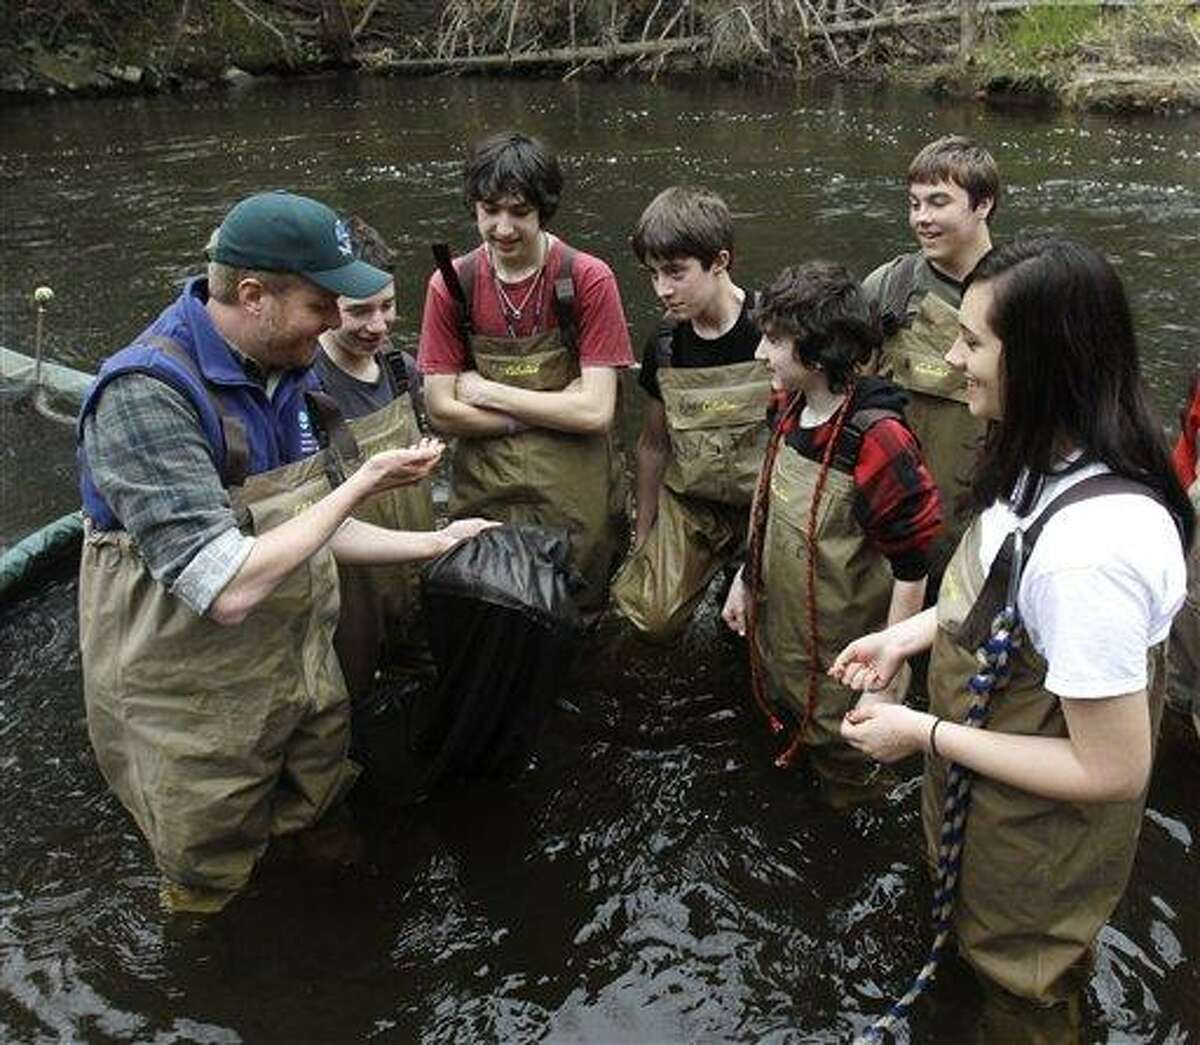 In this April 2011 file photo, Chris Bowser of the New York State Department of Environmental Conservation, left, checks a net for American eels with Kingston High School students on the Black Creek in West Park, N.Y. They have a reputation for being environmentally minded do-gooders. But an academic analysis of surveys spanning more than 40 years has found that today's young Americans are less interested in the environment and in conserving resources - and often less civic-minded overall - than their elders were when they were young. Associated Press